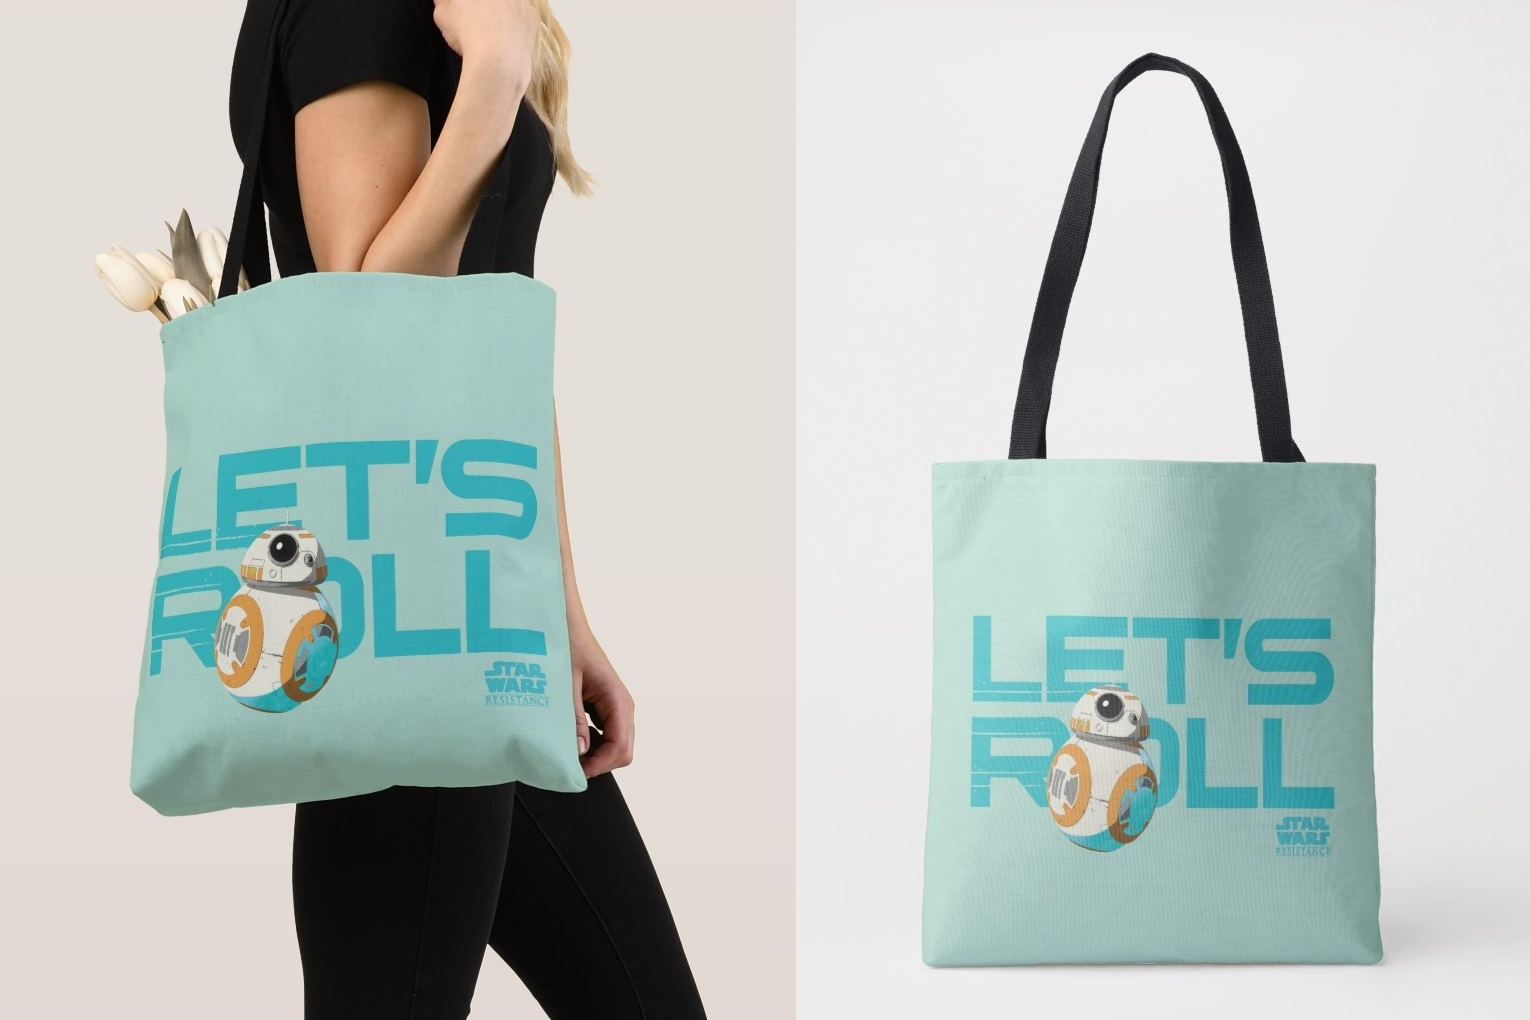 Star Wars Resistance BB-8 Let's Toll Tote Bag